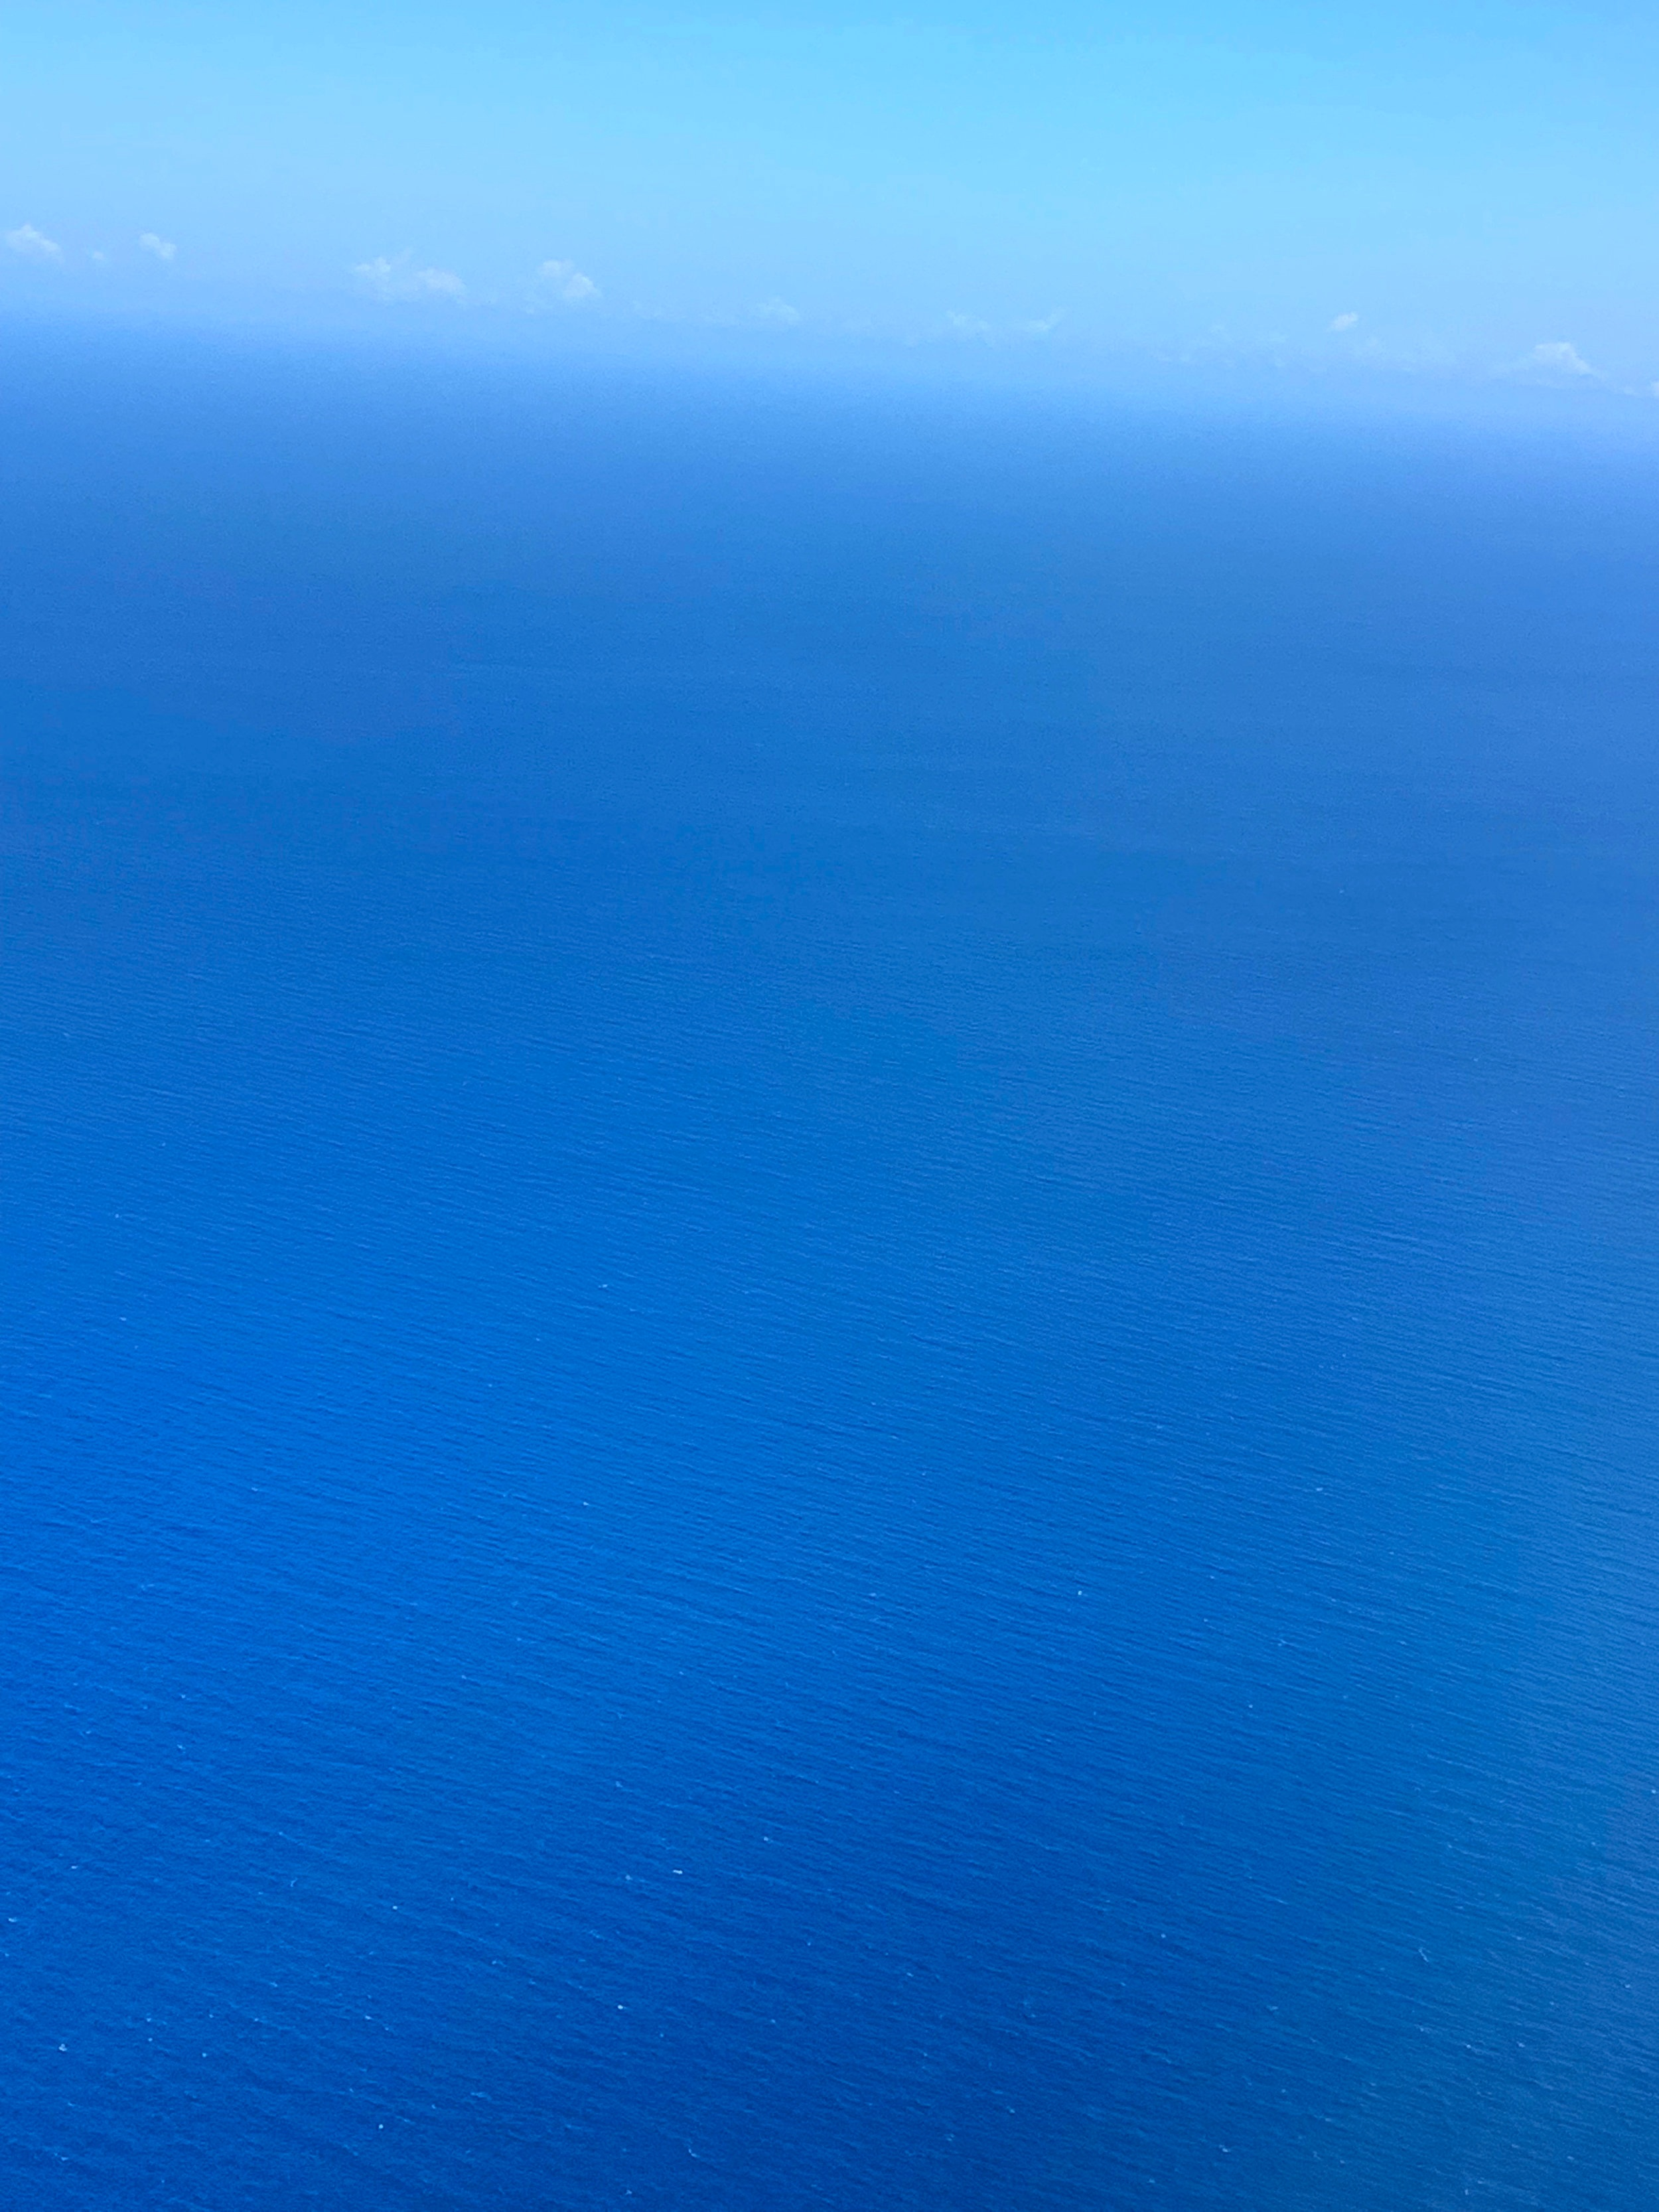 View from the window of my airplane, looking over the sea